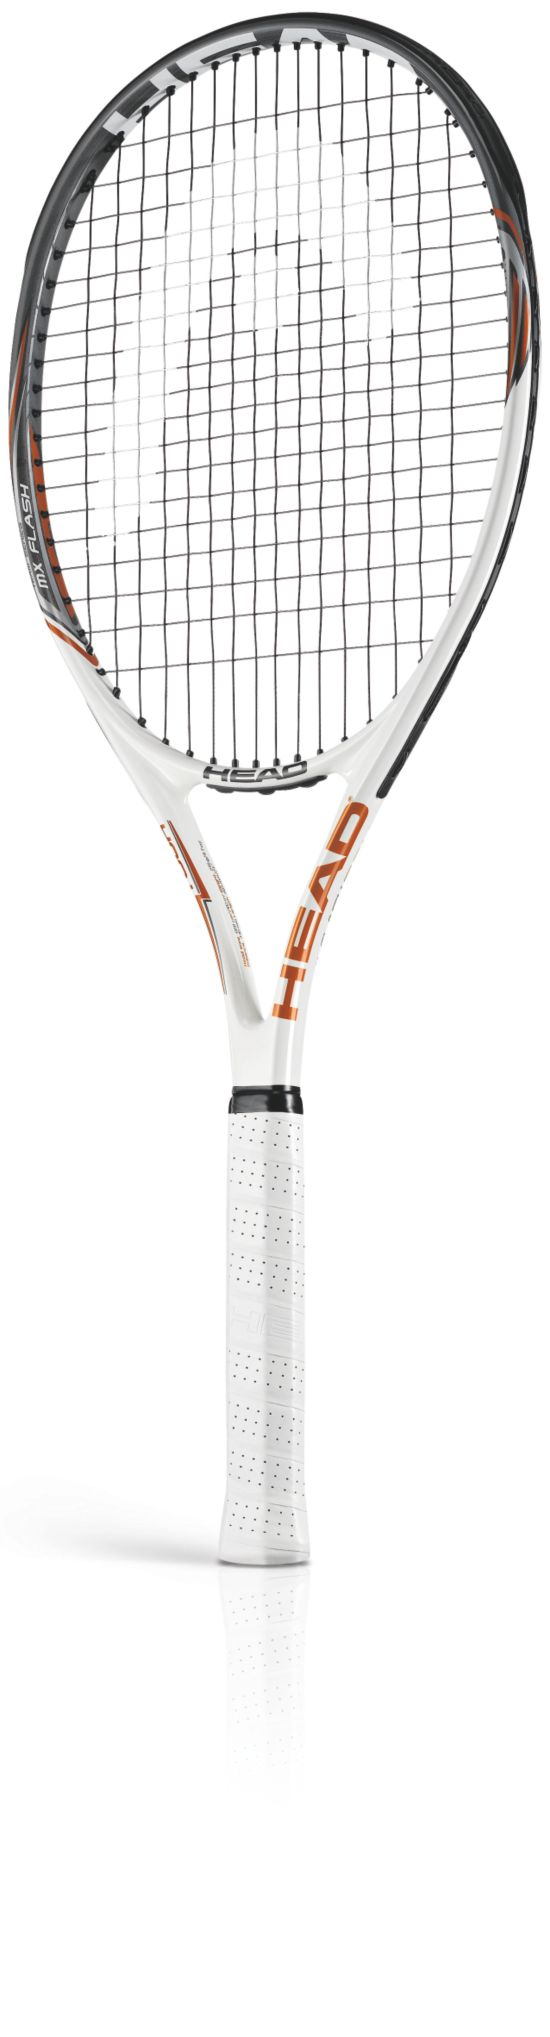 MX Flash Tour Tennisracket N/A